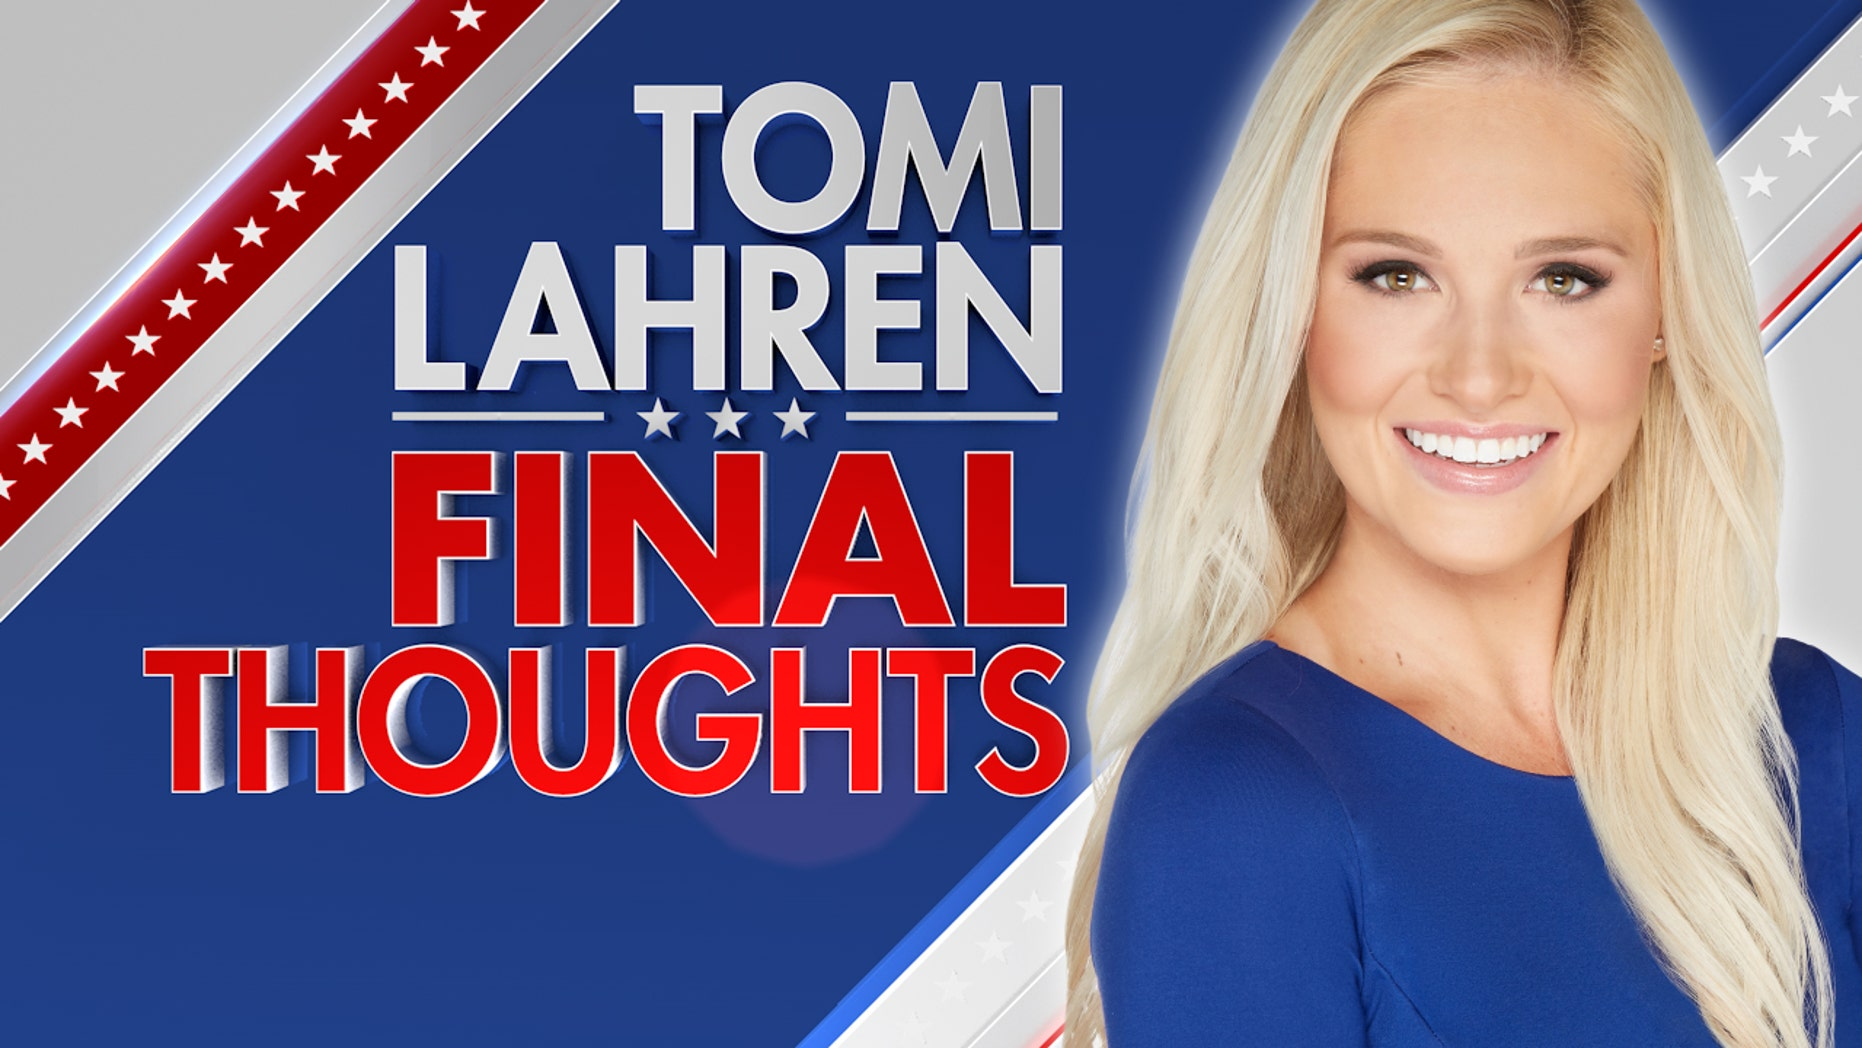 Westlake Legal Group Tomi_Lahren_Final_Thoughts_ENDFRAME Tomi Lahren: Biloxi police killing shows the 'war on cops' is real Tomi Lahren fox-news/us/us-regions/southeast/mississippi fox-news/us/crime/police-and-law-enforcement fox-news/opinion fox news fnc/opinion fnc article 1e1089ba-c6ac-5c46-8c01-8c343e57debe